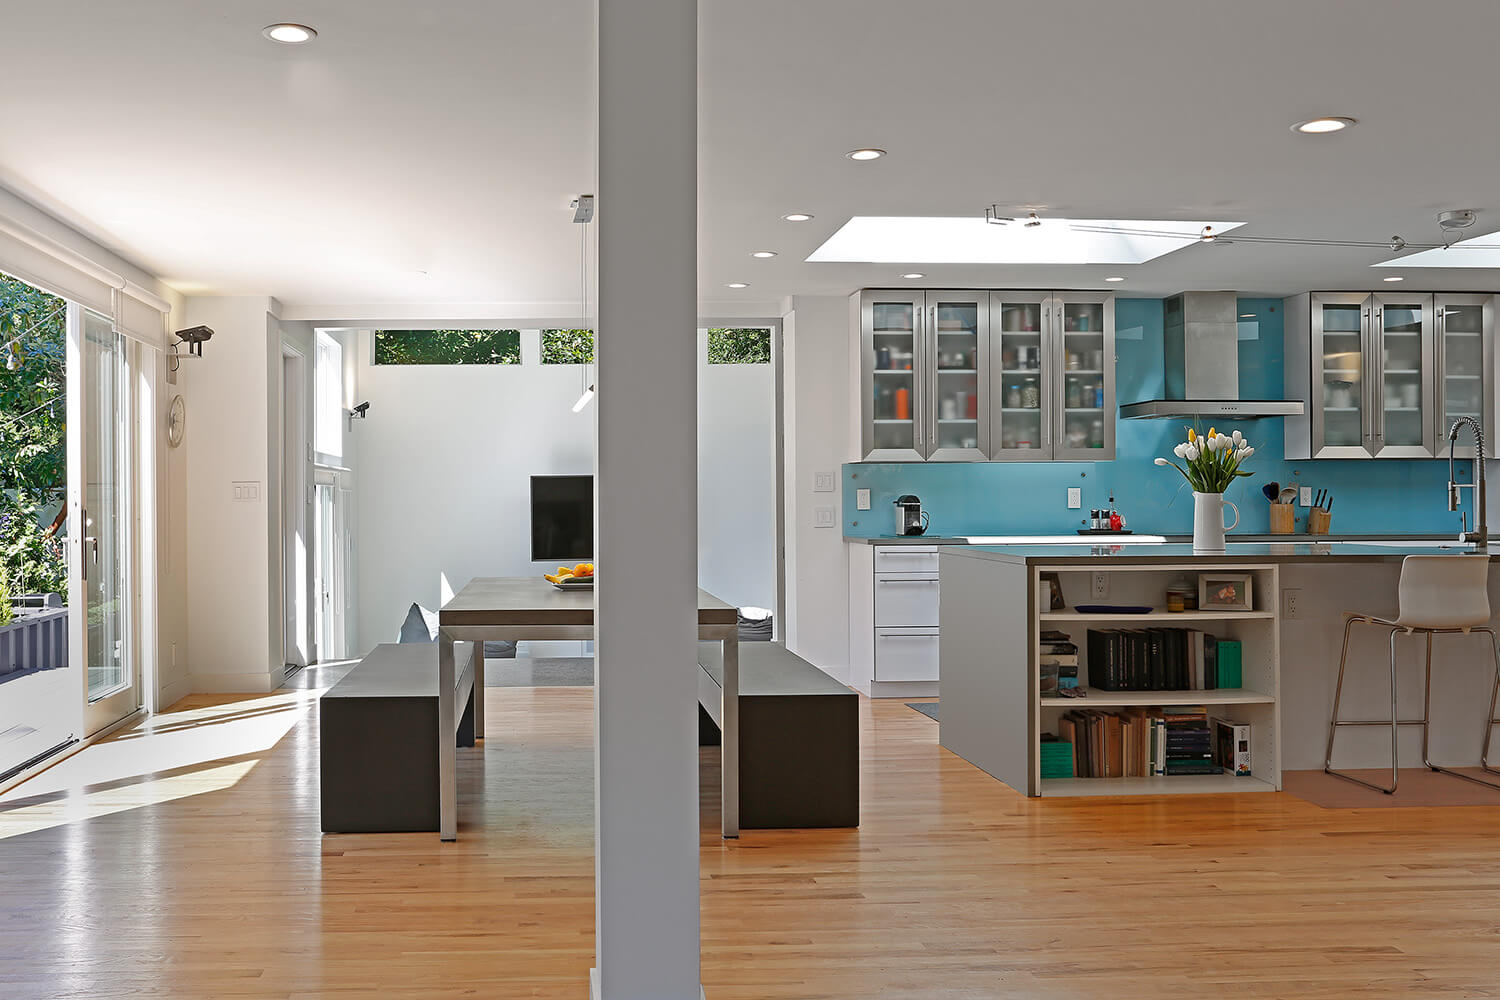 Wyss Family Container House by Paul Michael Davis Architects